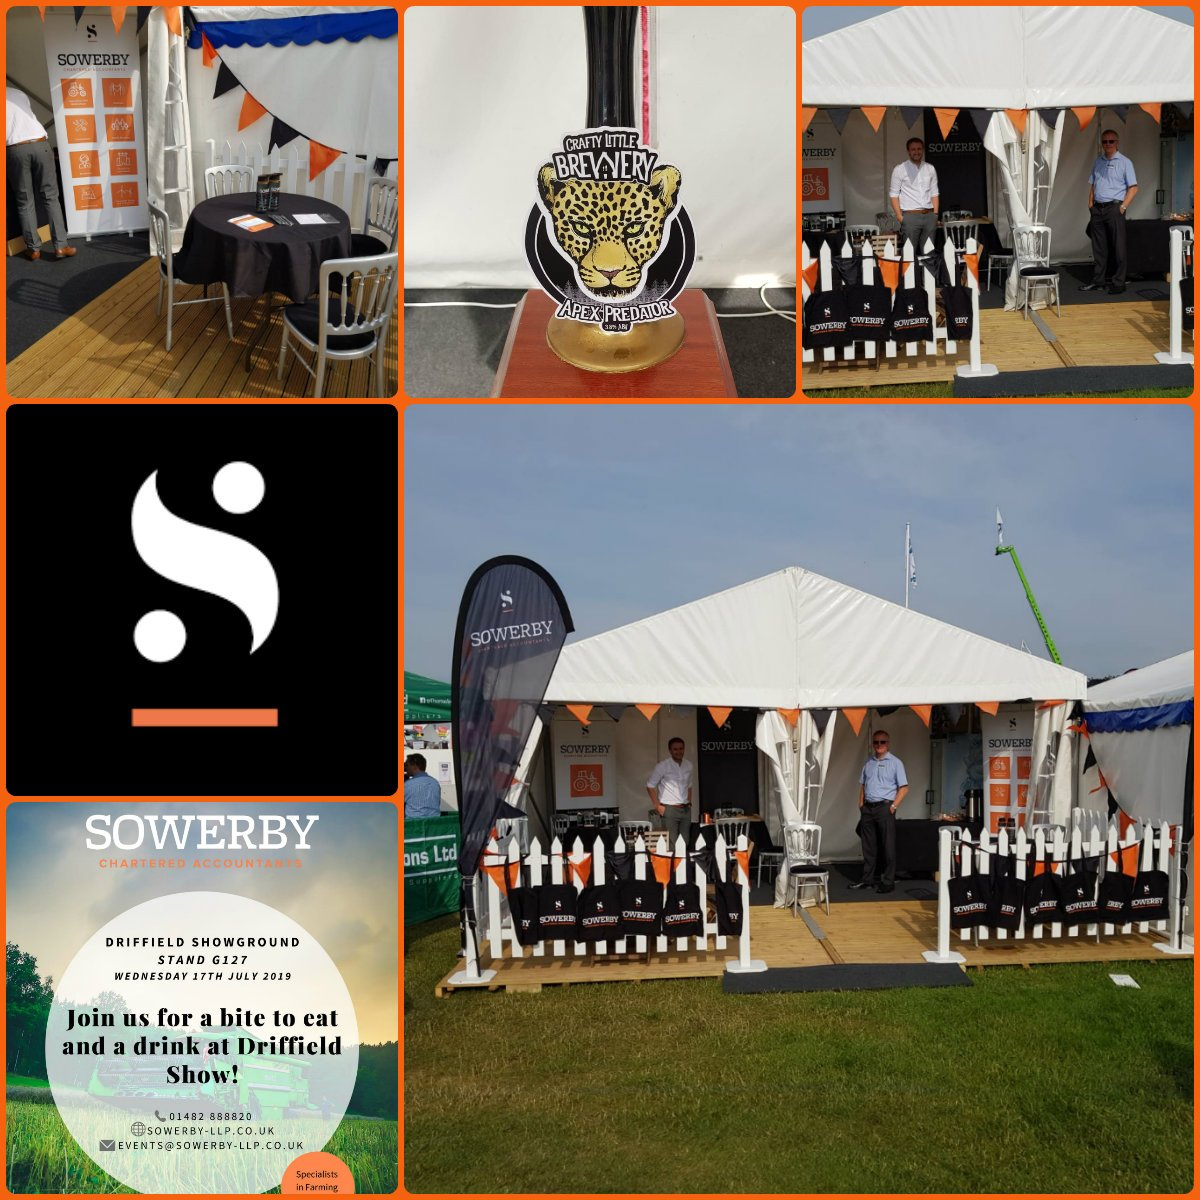 It's a beautiful day down @DriffieldShow Come and join us for a drink, bite to eat and a chat.  We are at stand G127 all day #driffieldshow #agriculture #driffshow #drink #chat #eat #charteredaccountant #accountancy #teamsowerby